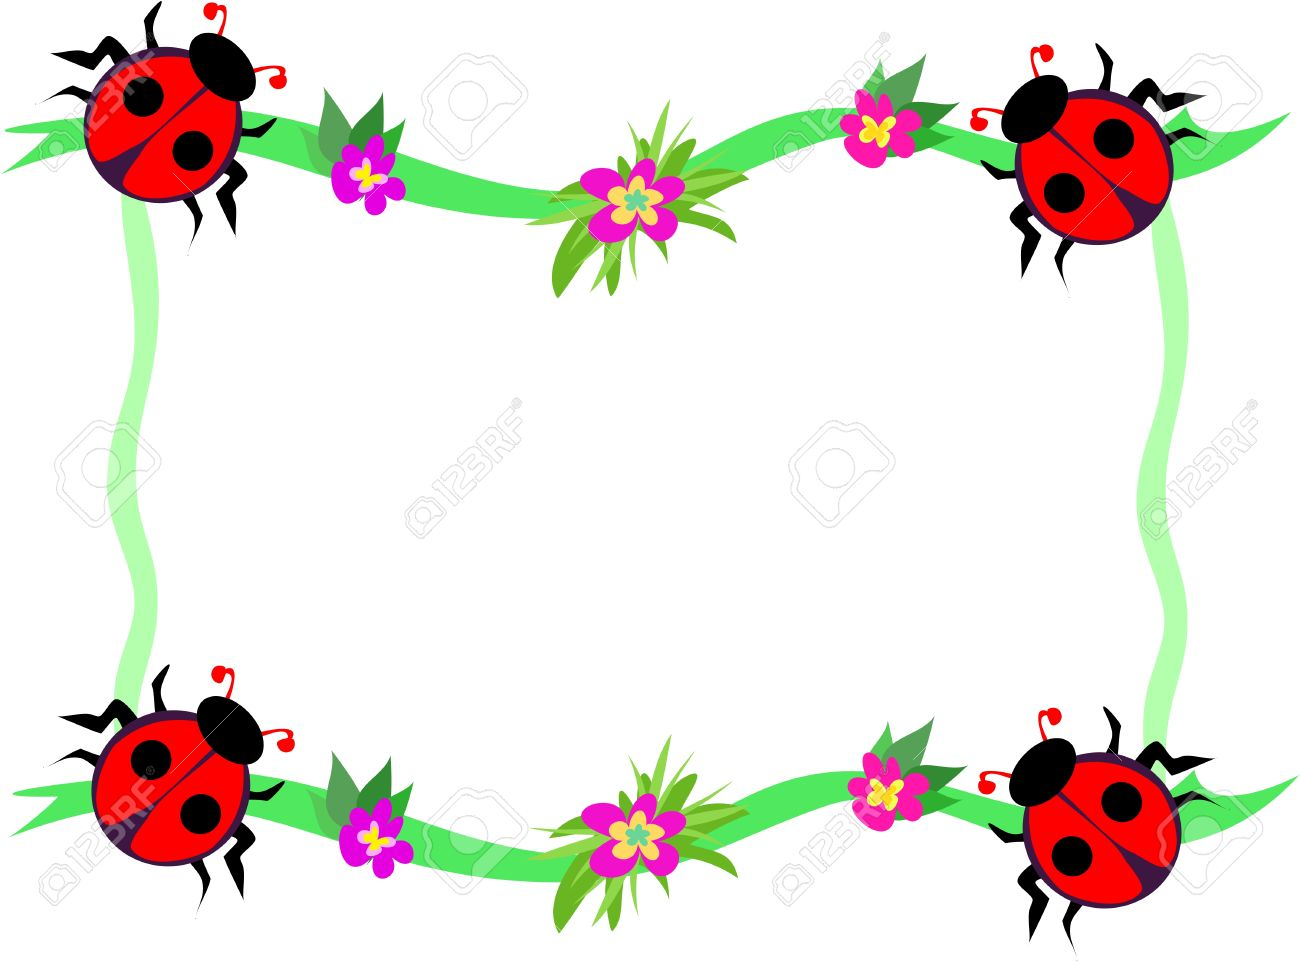 Frame Of Red Ladybugs And Flowers Royalty Free Cliparts, Vectors ...